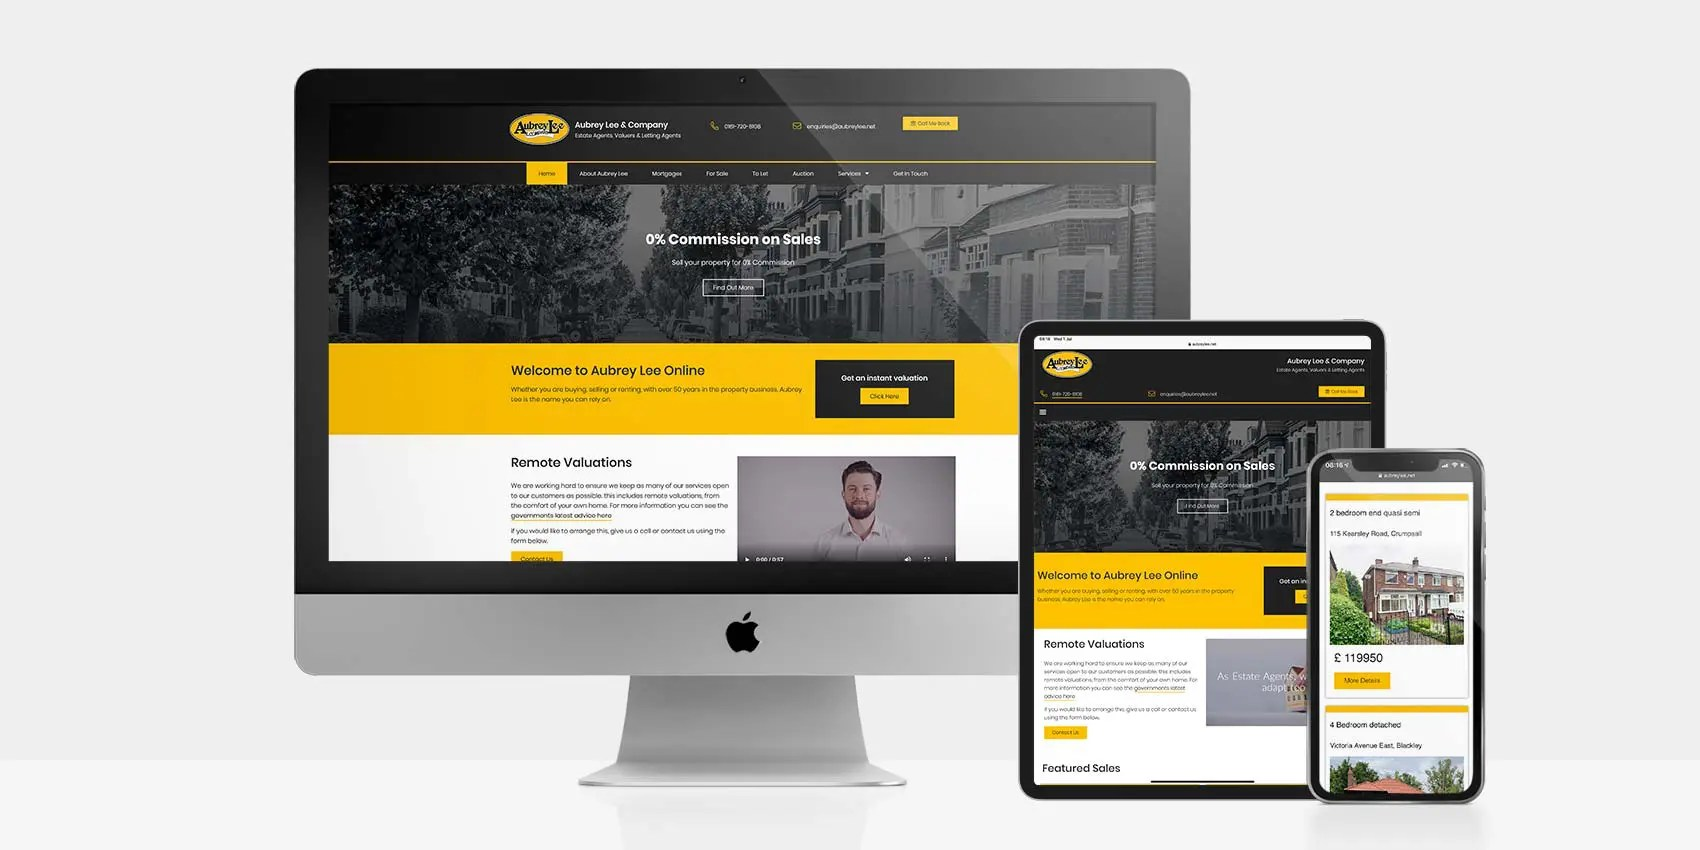 WordPress Website For Aubrey Lee & Company: By Factory, PPC Agency In Manchester